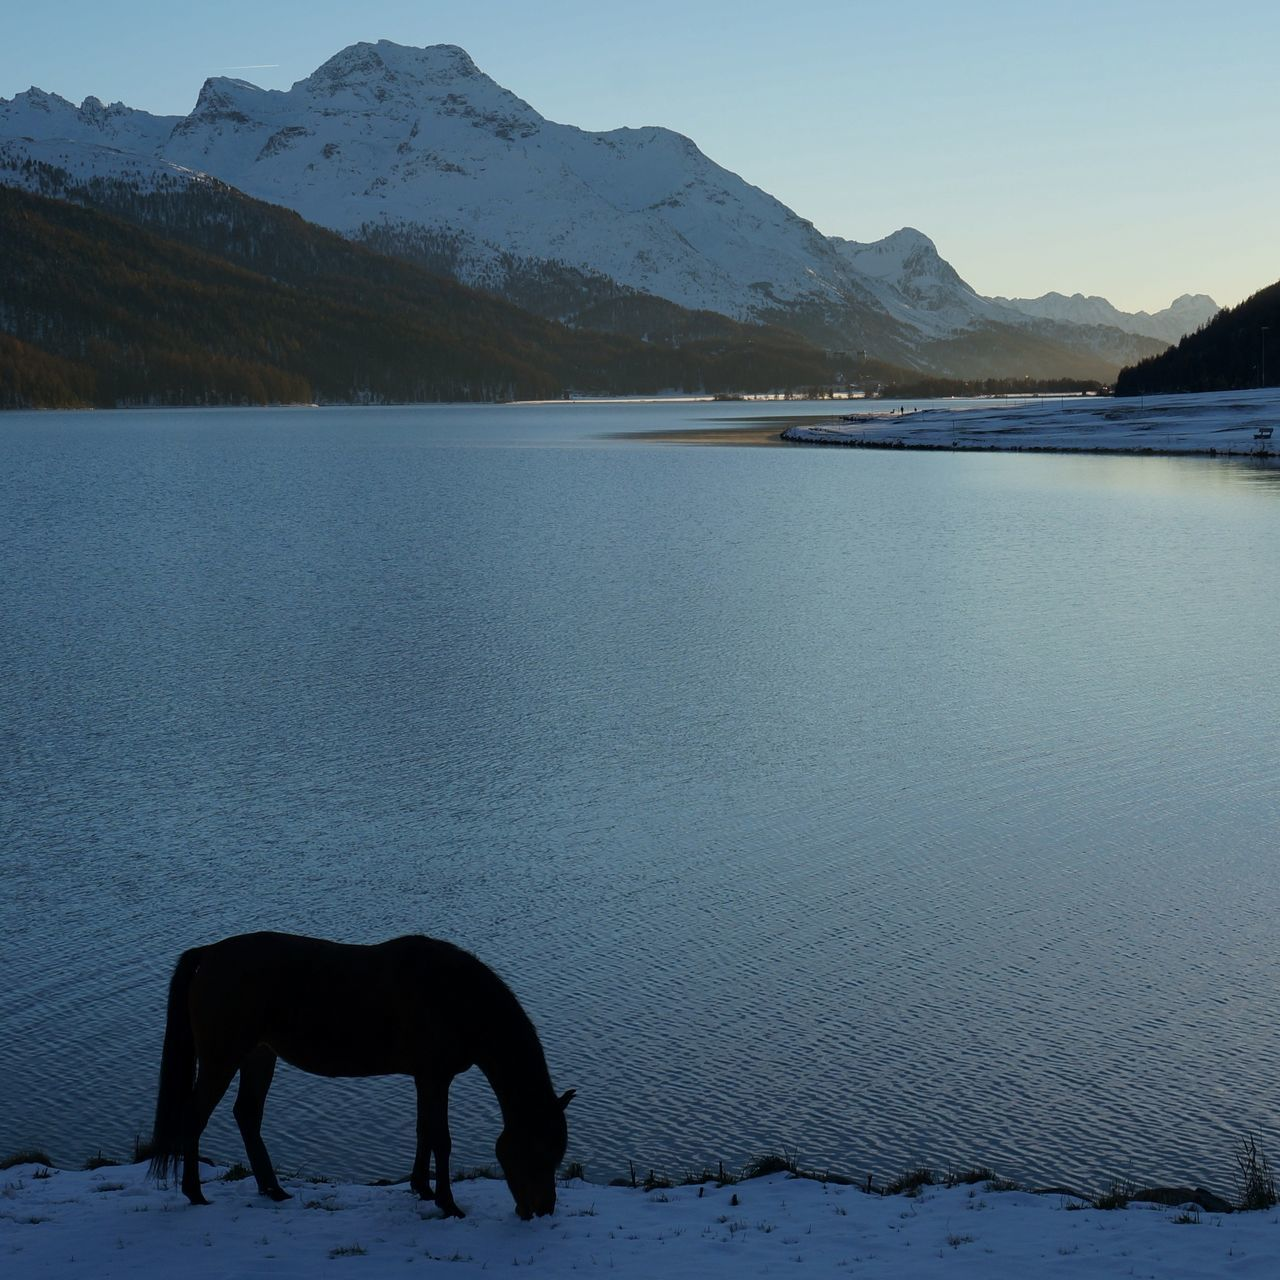 What remains of the day Engadin Corvatsch Horses Lake LakeSilvaplana Margna SilsMaria Mountain Range Swiss Alps PreciousMoments Switzerland Tranquility